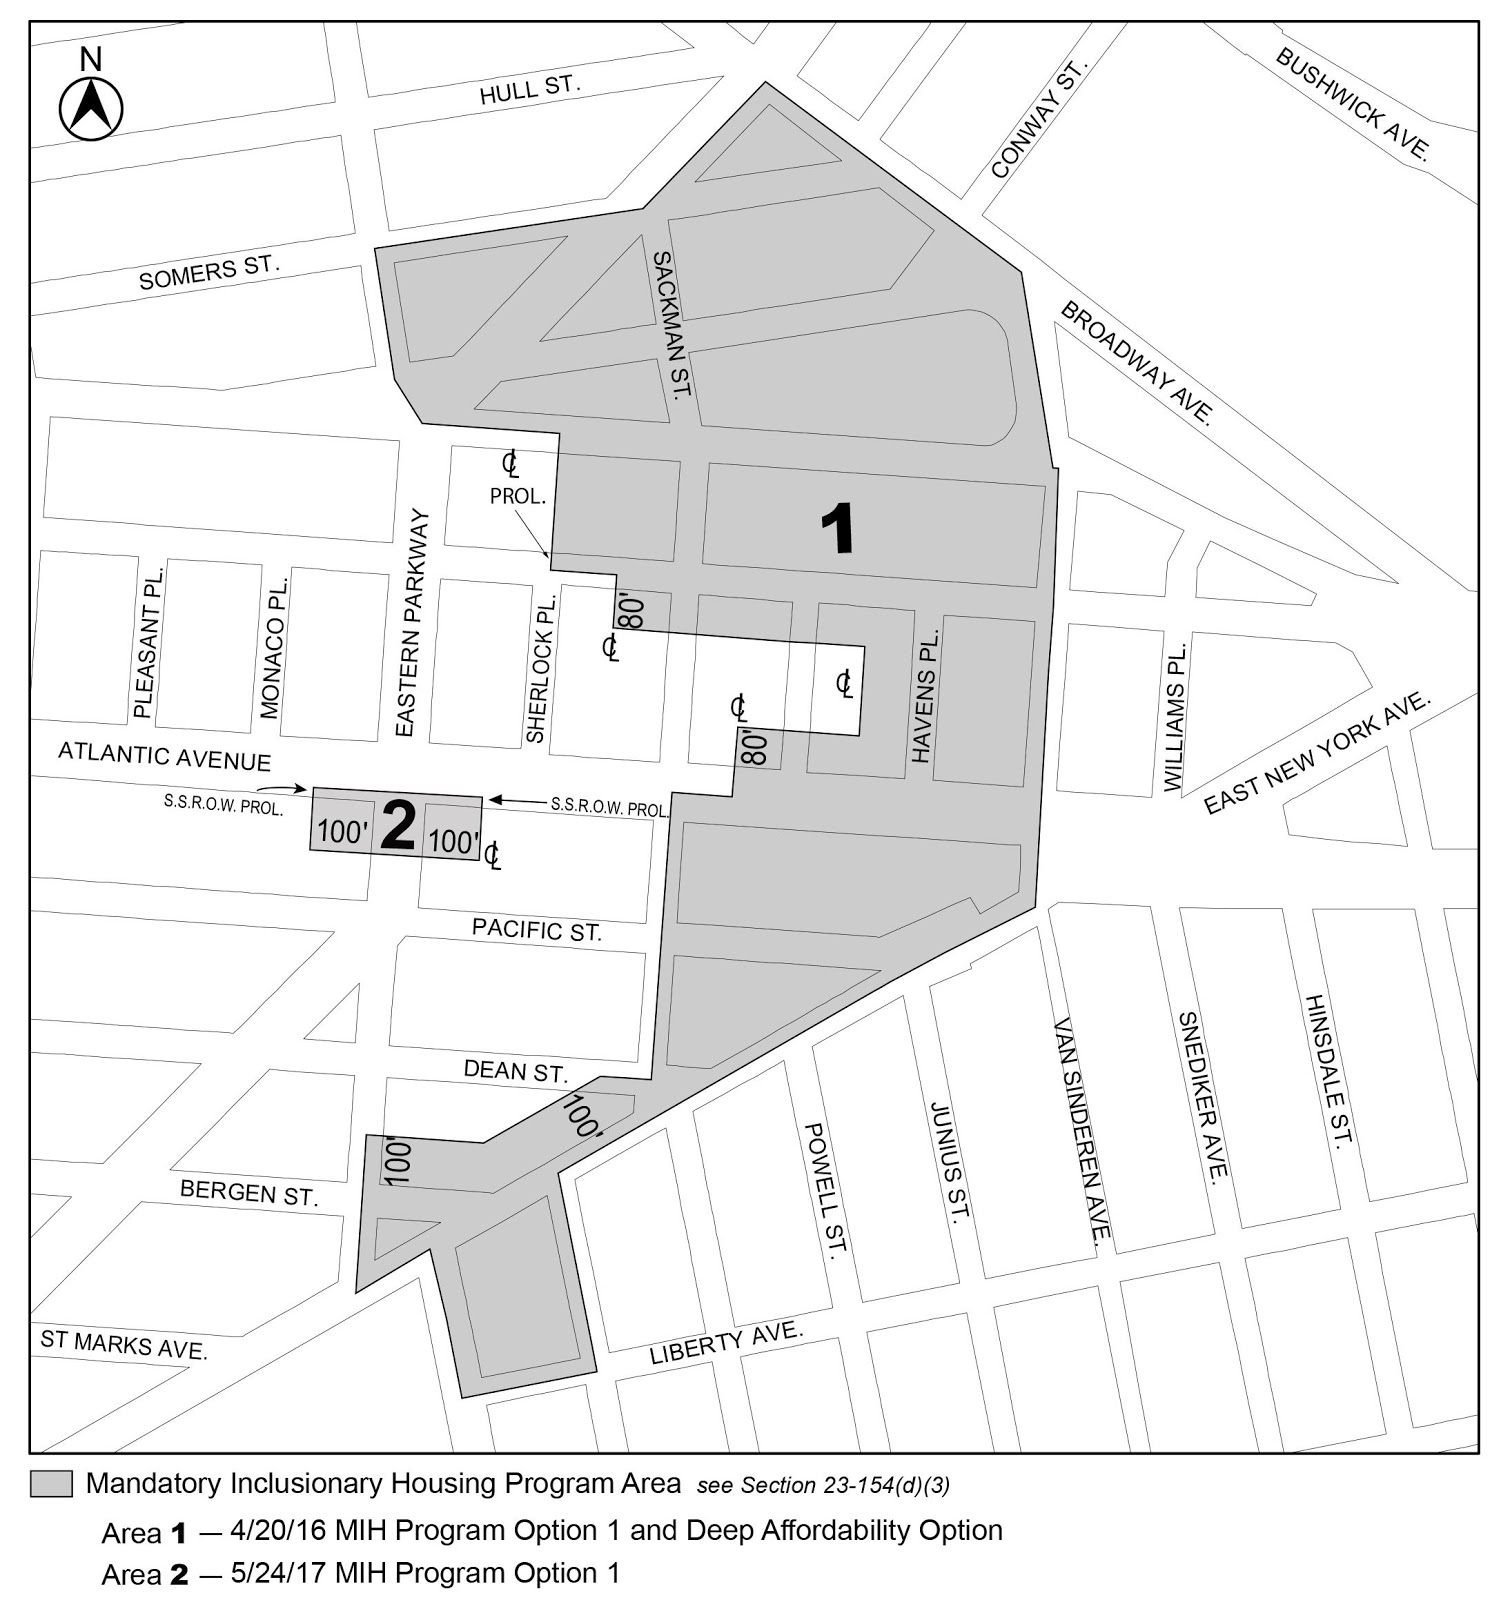 Zoning Resolutions F-Inclusionary Housing Designated Areas and Mandatory Inclusionary Housing Areas_2.79